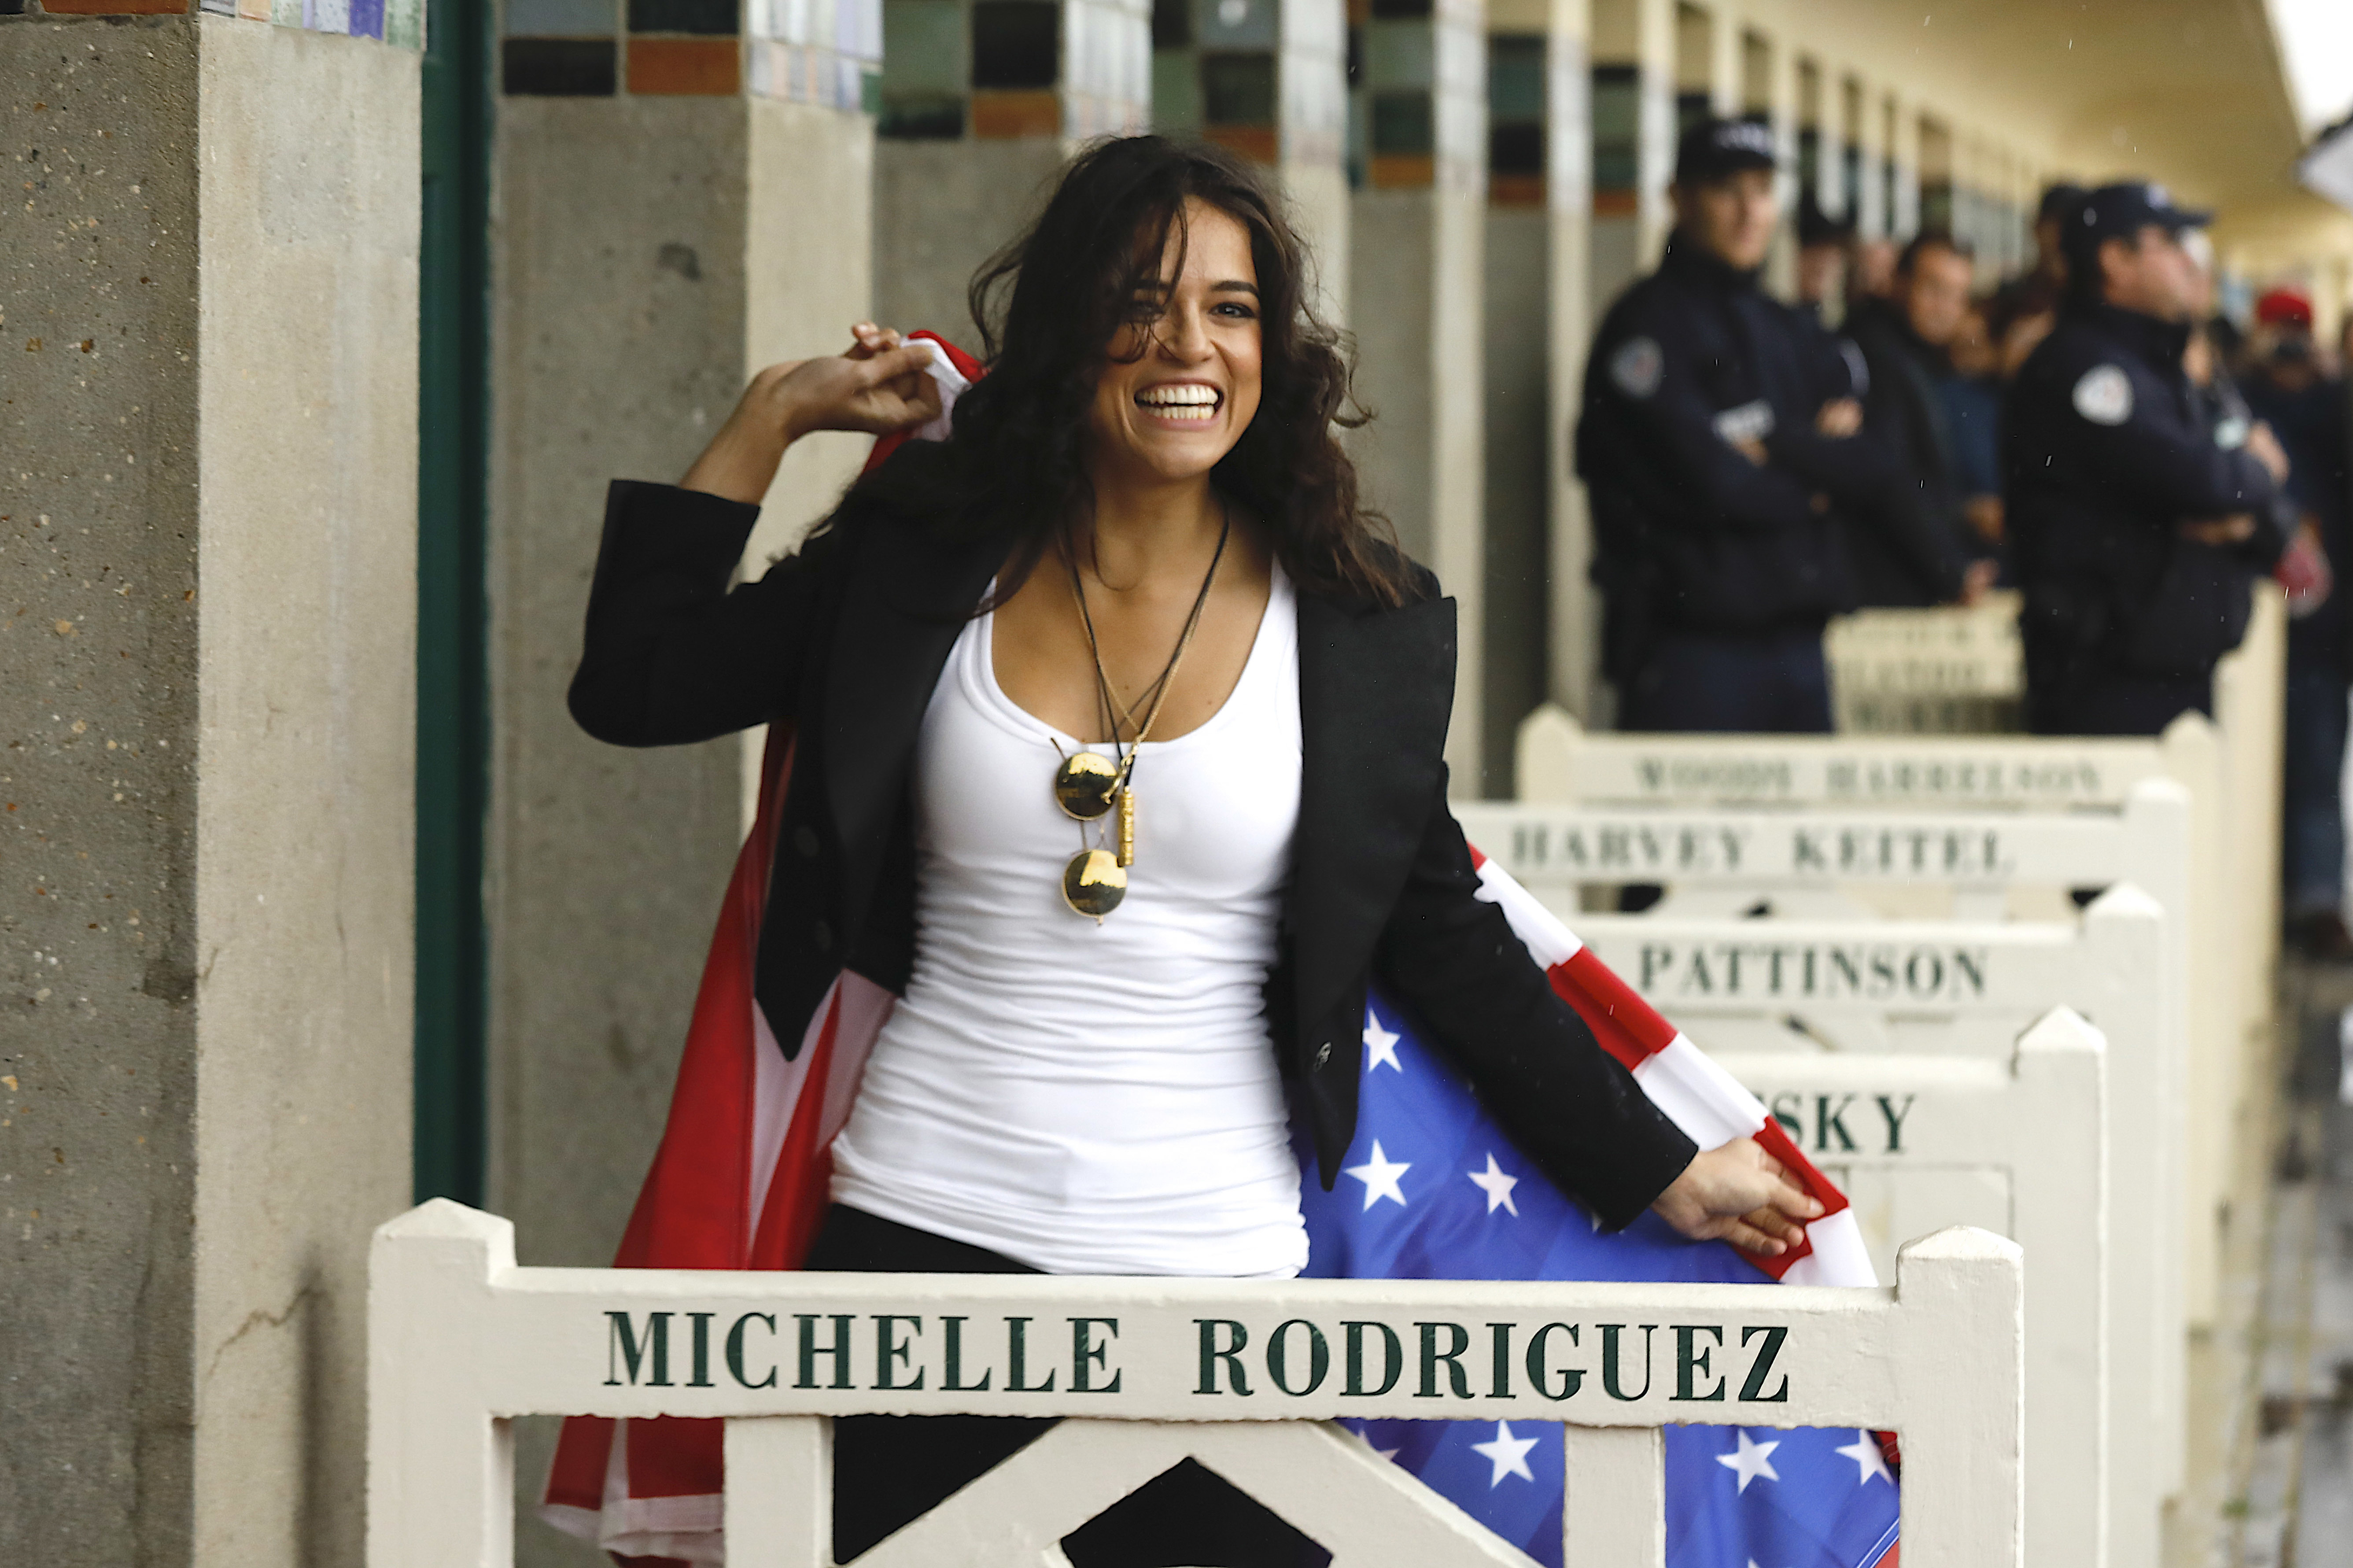 Michelle Rodriguez appears during the unveiling of her dedicated beach locker room on the Promenade des Planches at the 43rd Deauville American Film Festival on Sept. 8, 2017.